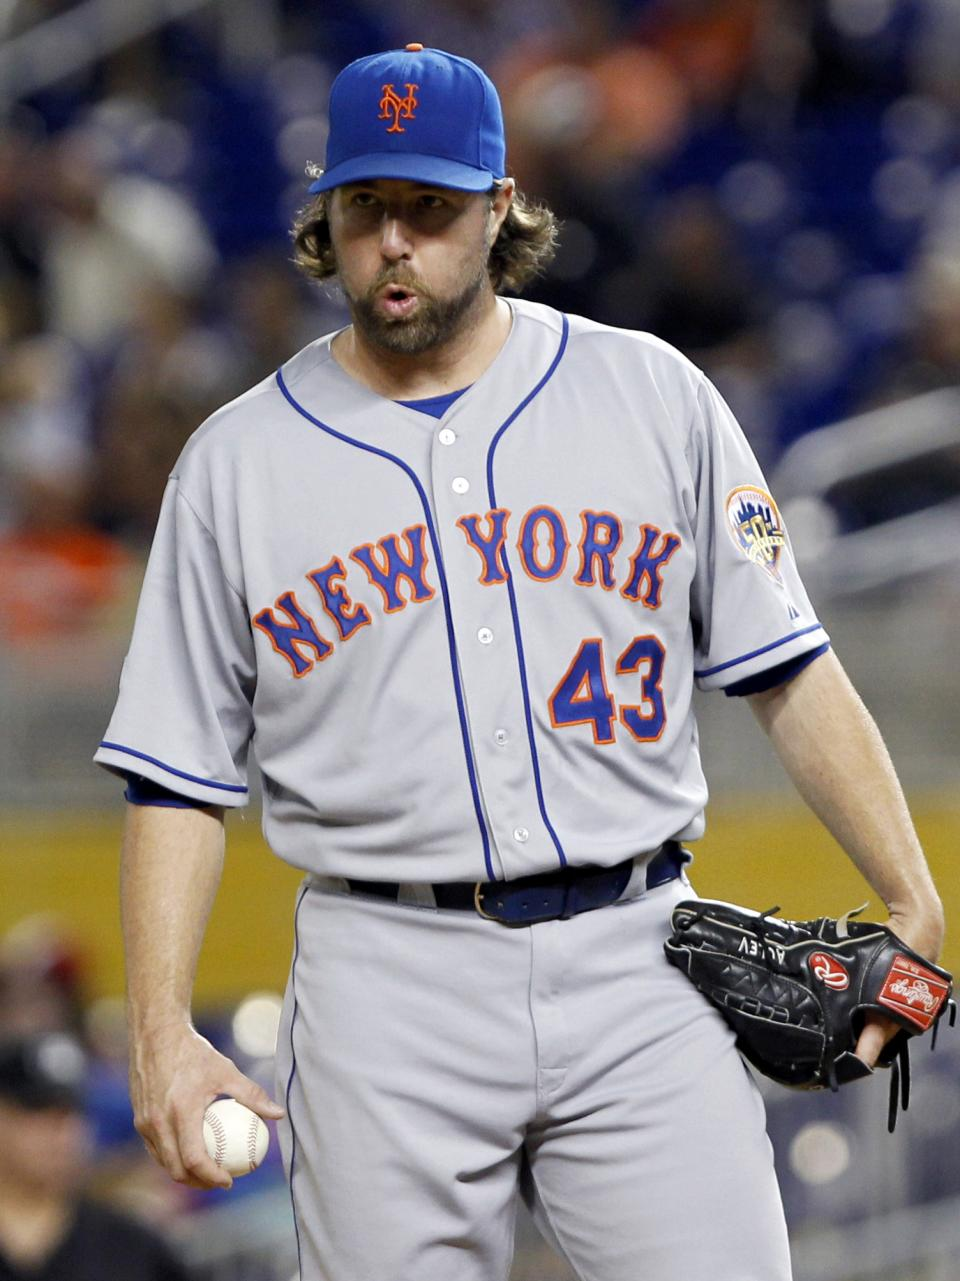 New York Mets R.A. Dickey prepares to pitch after Miami Marlins' Carlos Lee hit a single driving in Jose Reyes during the sixth inning of a baseball game in Miami, Tuesday, Oct. 2, 2012. (AP Photo/Alan Diaz)